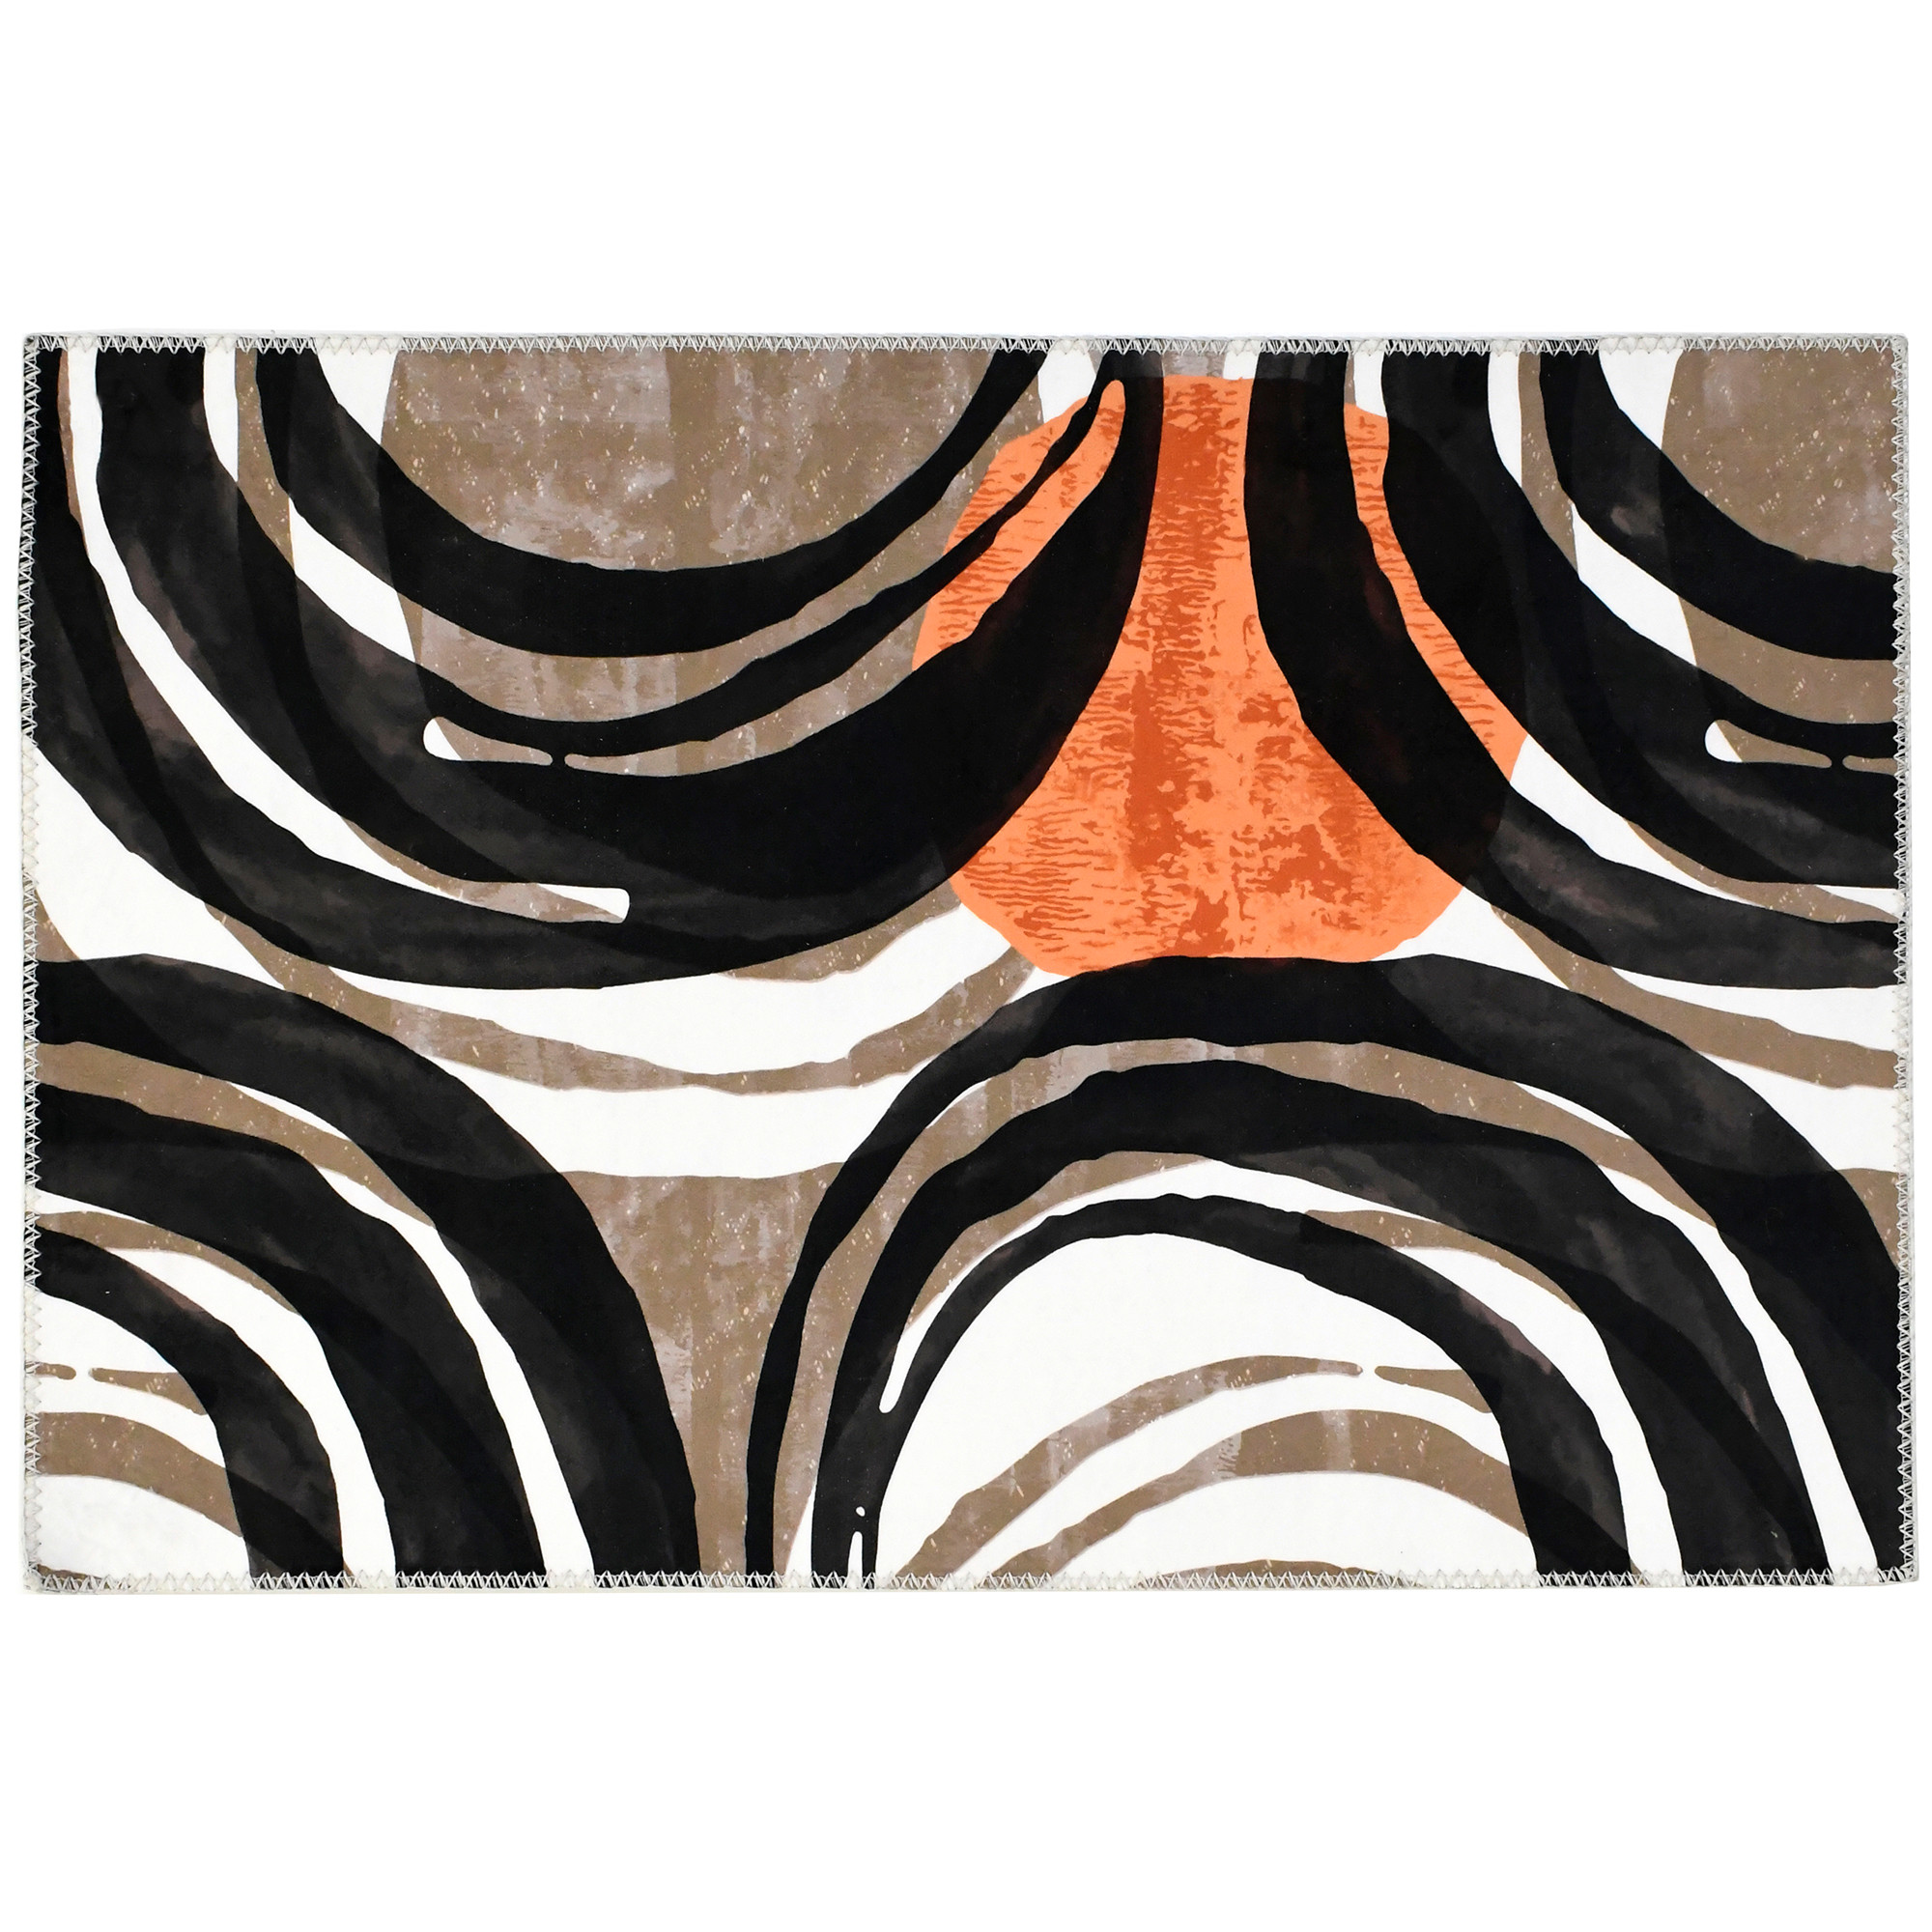 Warm hues of brown and orange swirl in orbs on this Homefires by Jellybean® poly-suede floor cloth designed by Elizabeth Hale. The printed polyester offers a thin, machine washable floor covering with flexible placement options and four sizes available.